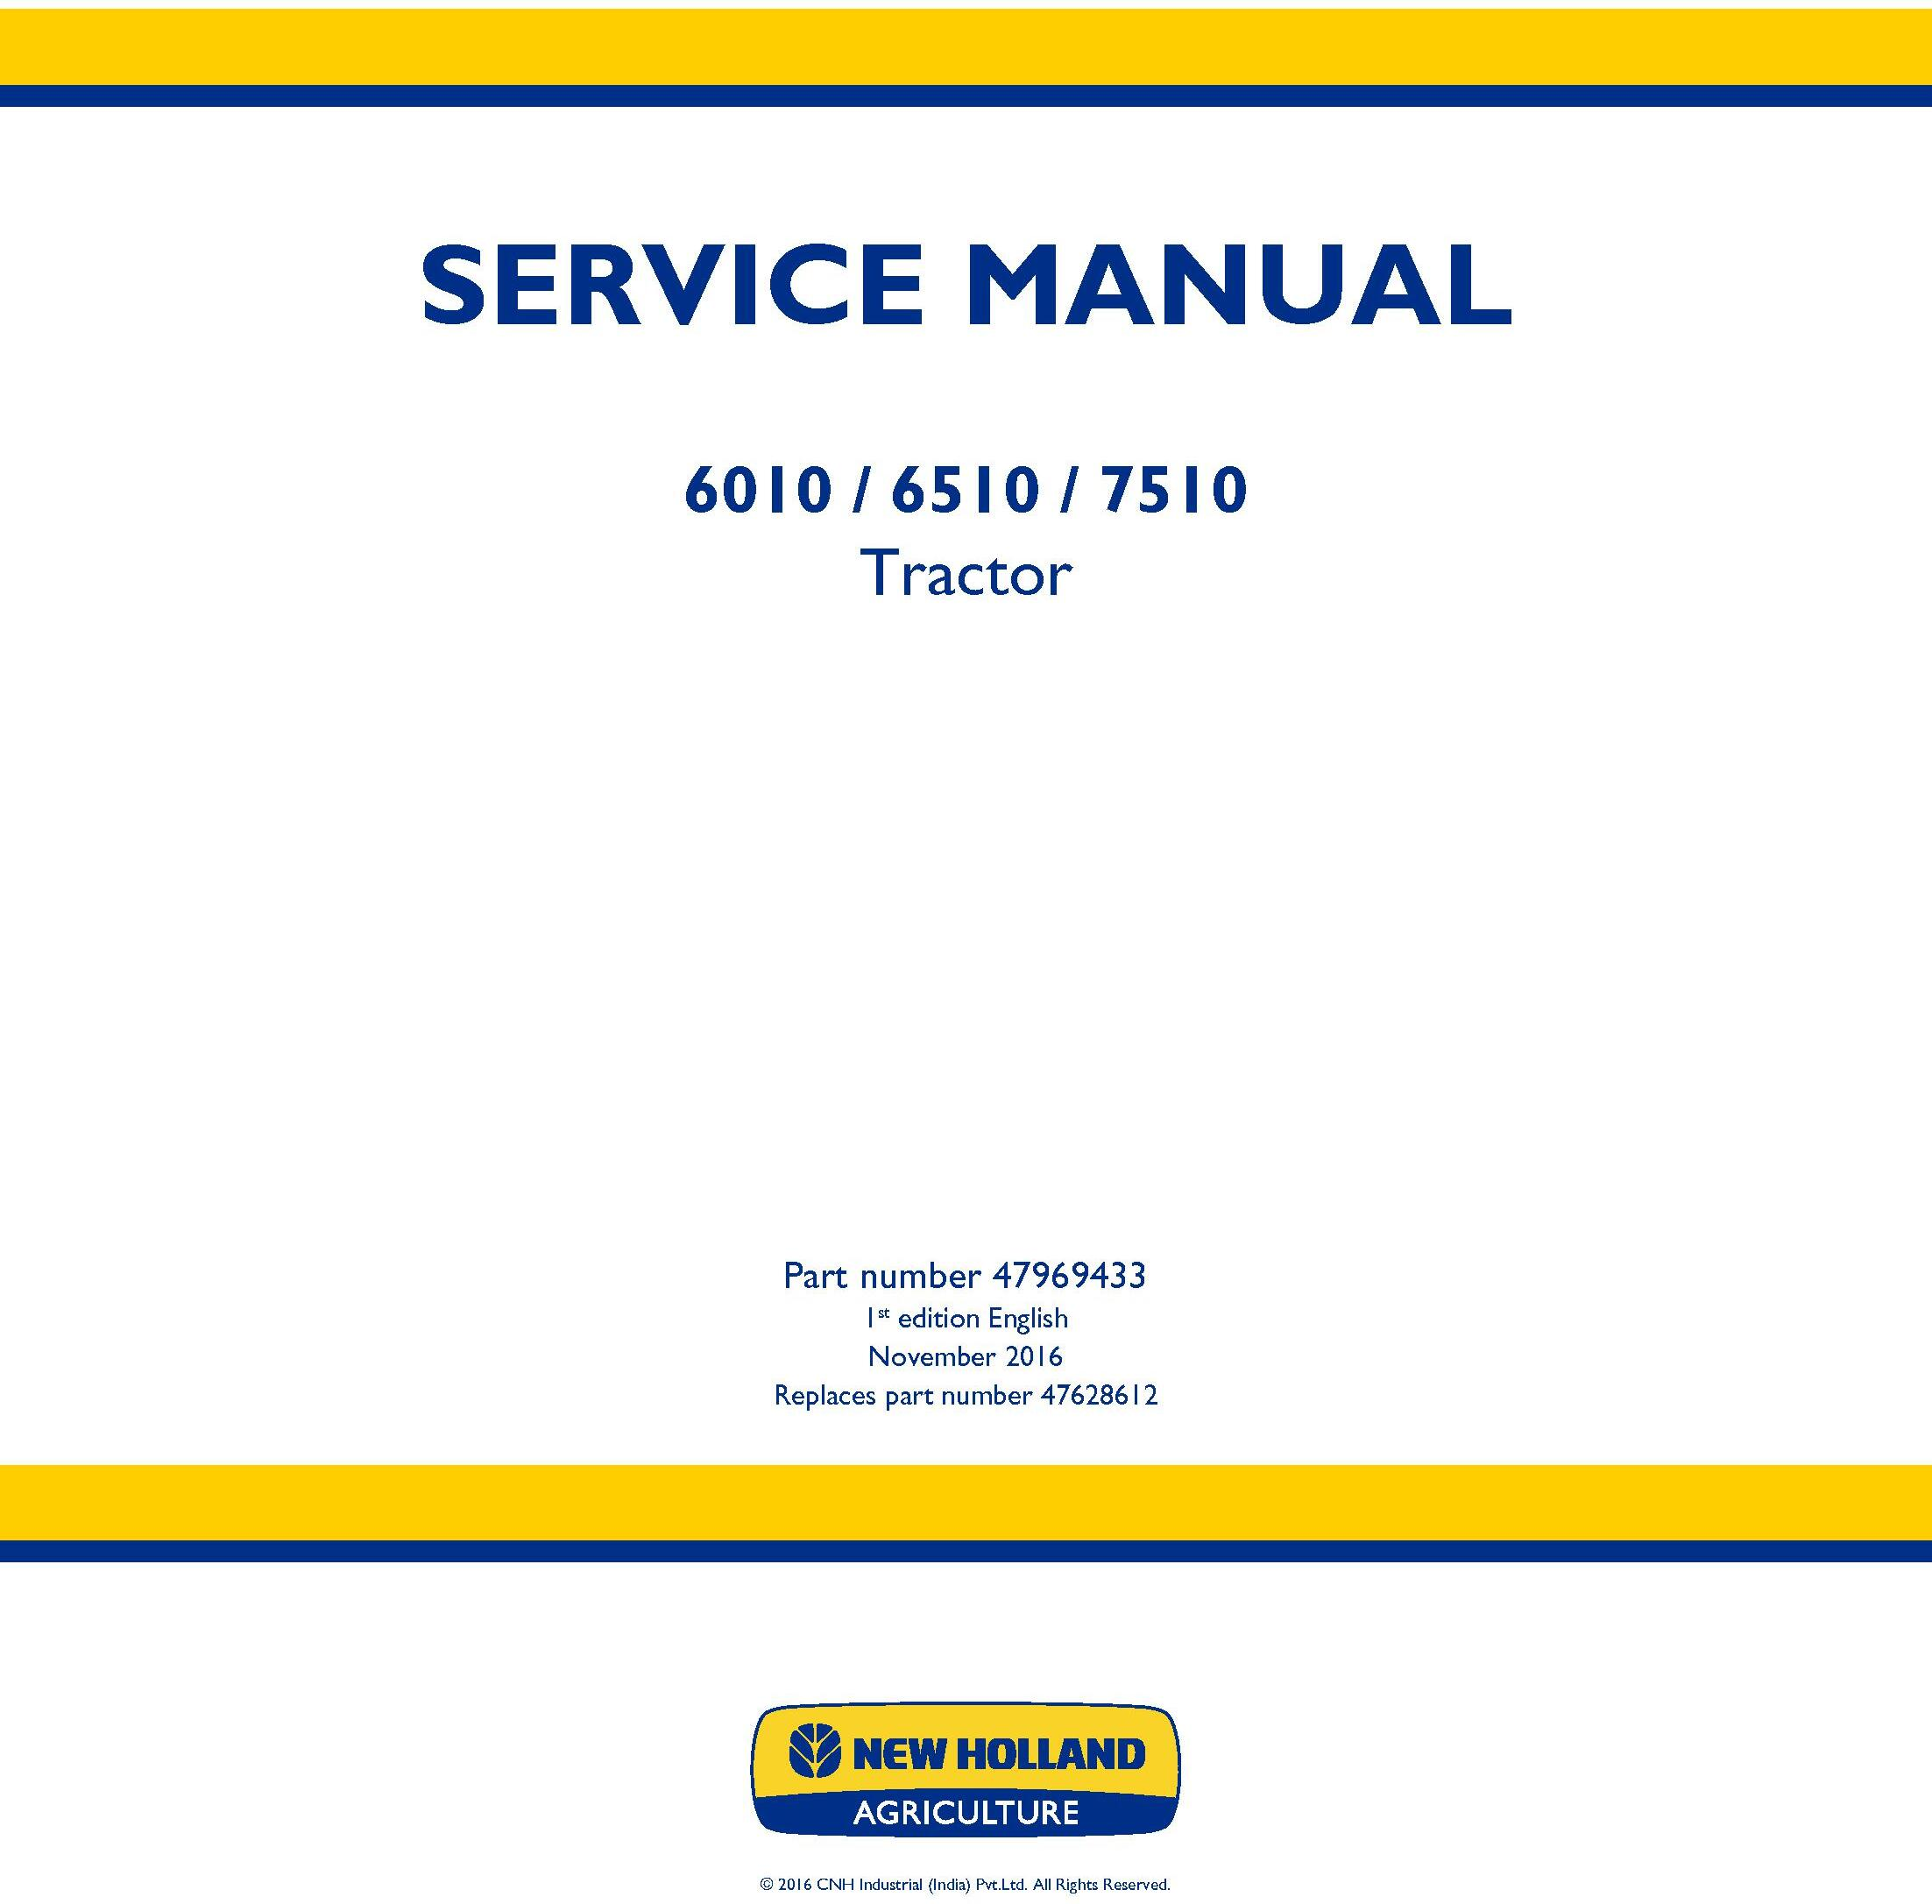 New Holland 6010, 6510, 7510 Tractor Service Manual - 19472